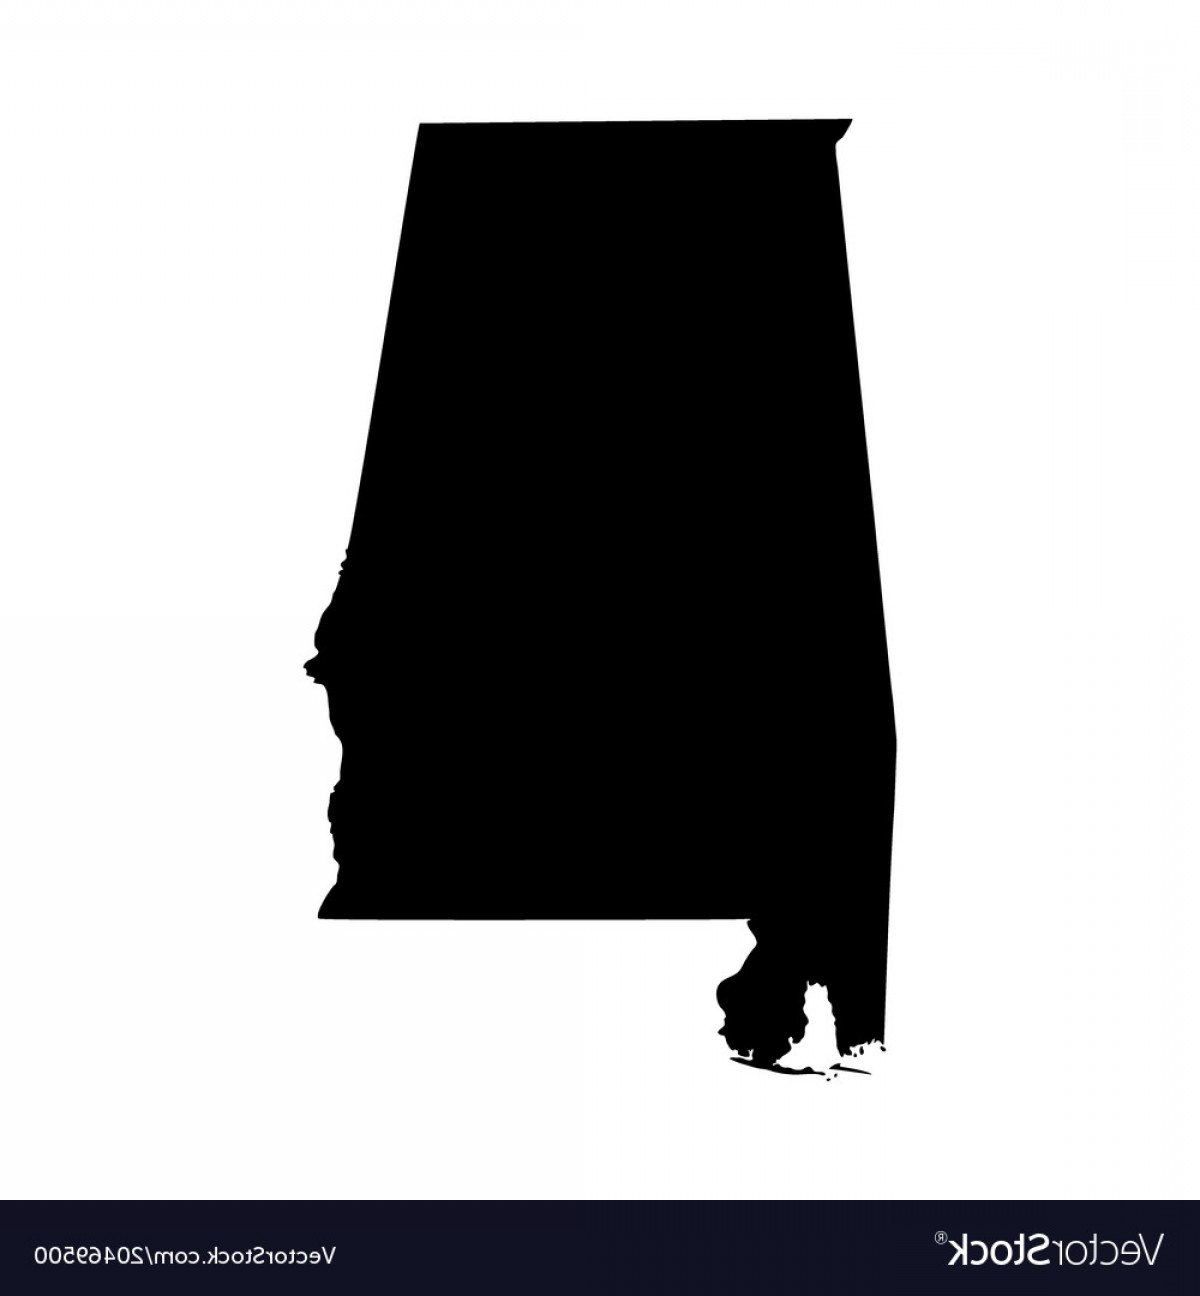 Alabama Outline Vector: Map Of The Us State Alabama Vector